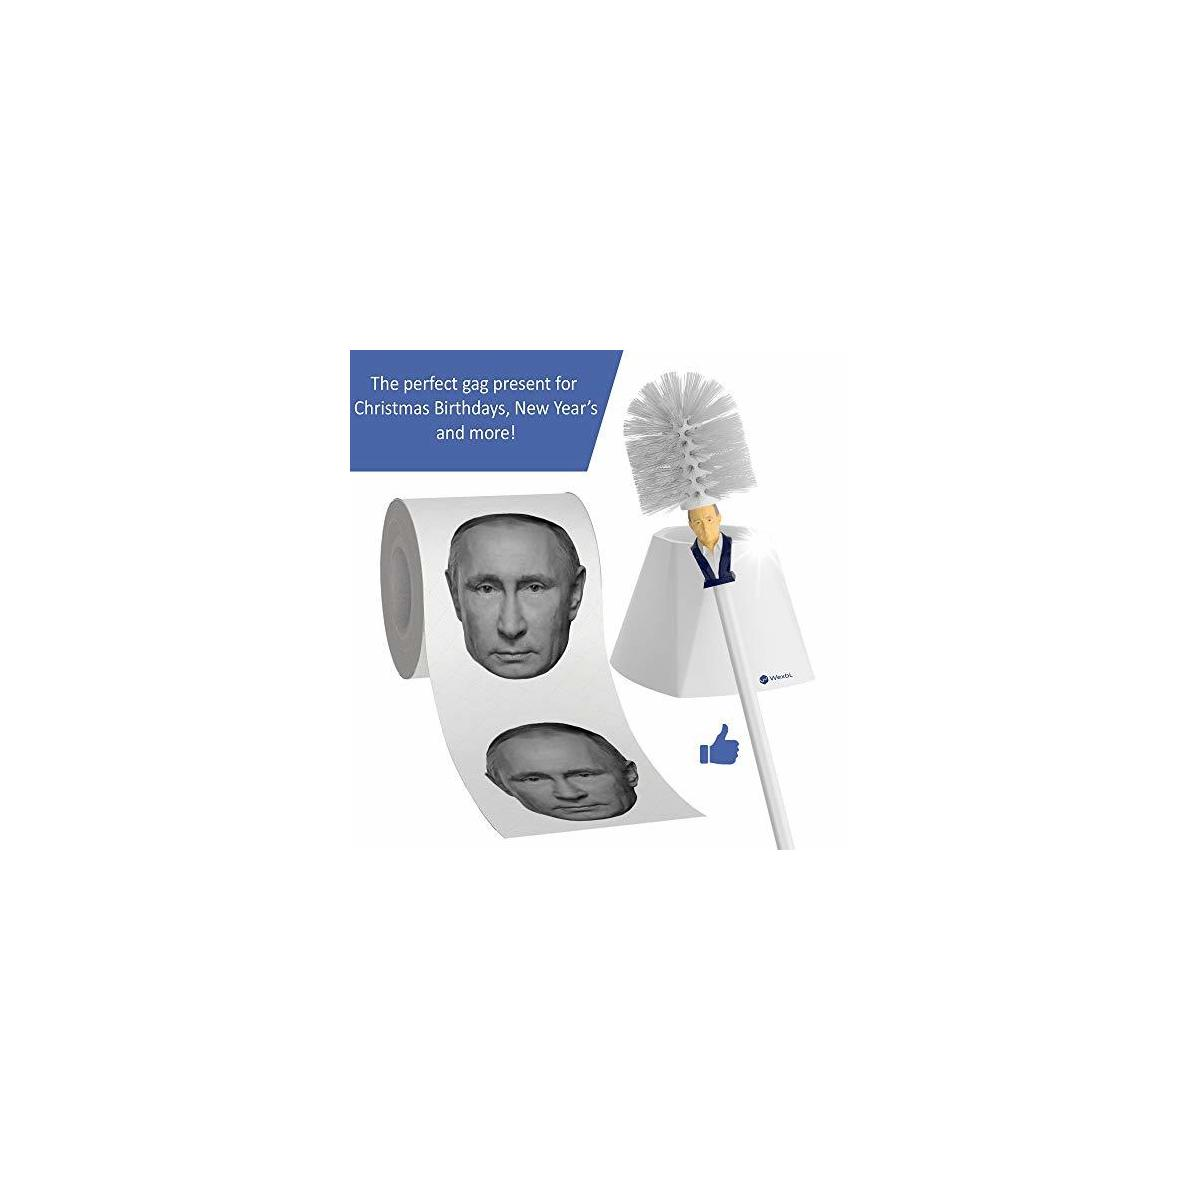 Gag Gifts - Putin Toilet Brush and Putin Toilet Paper, White Elephant Funny Gifts for Adults with Russian President Vladimir Putin's Face, Novelty Bathroom Decor Set…